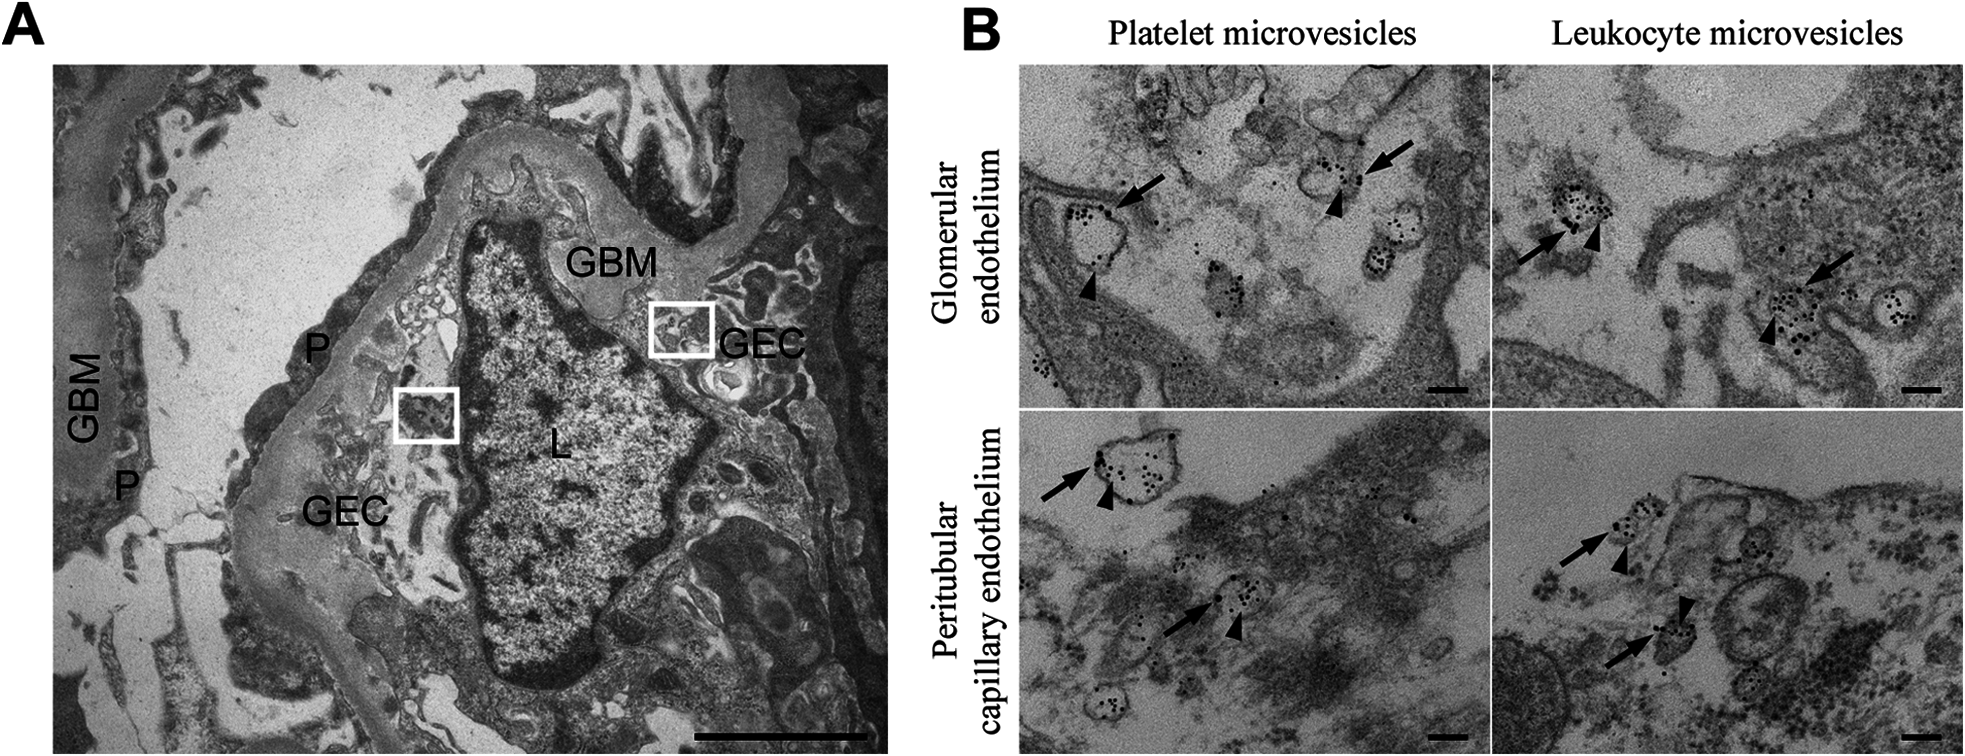 Stx2-containing blood cell-derived microvesicles detected in the renal cortex of a HUS patient.